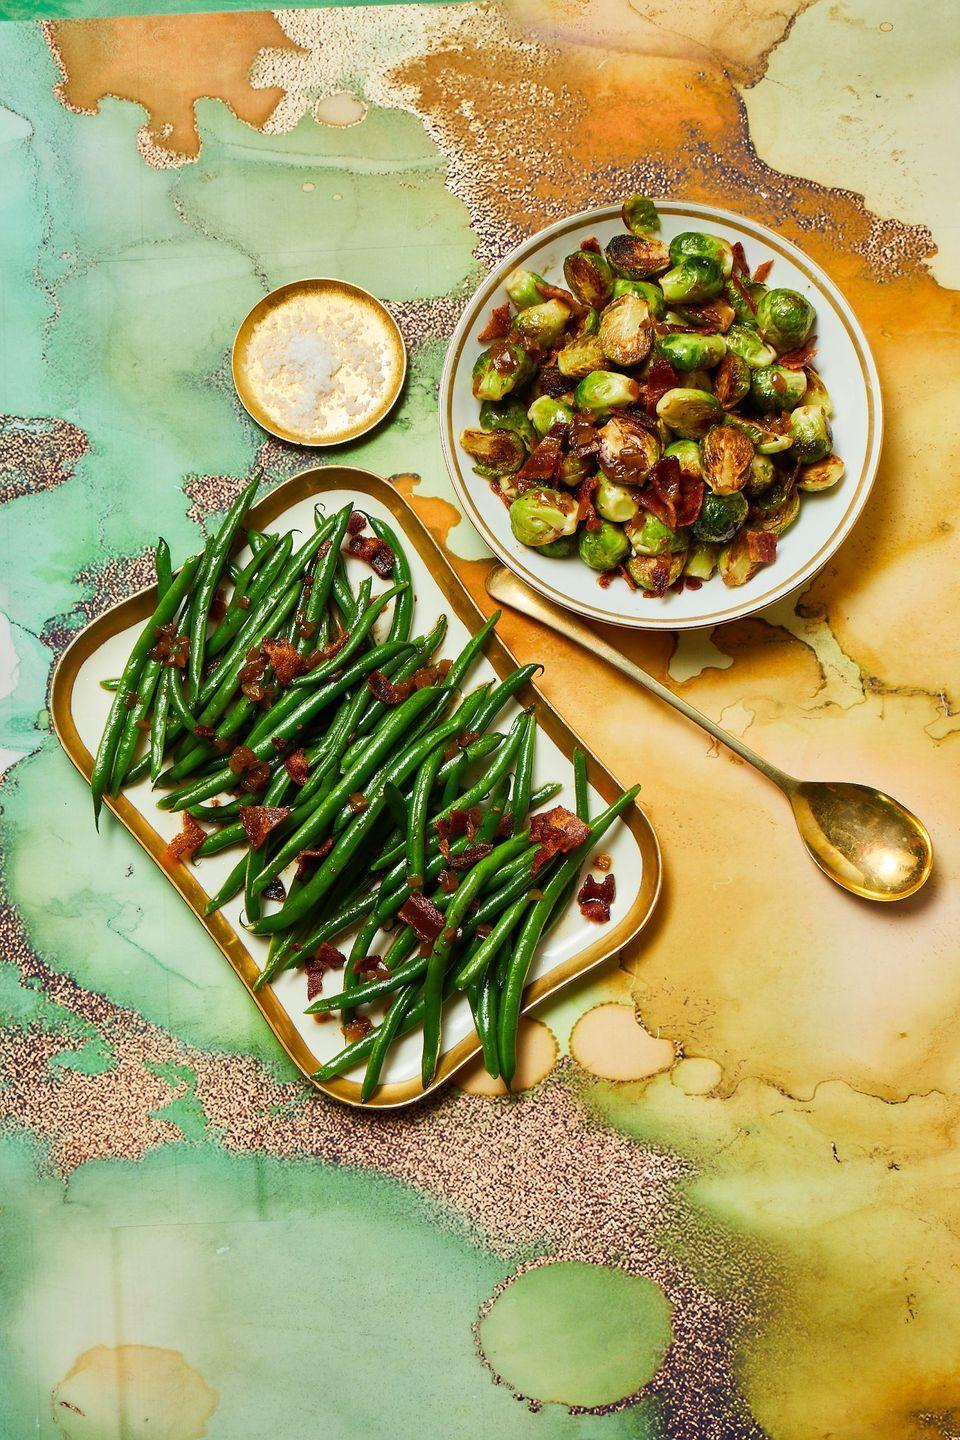 """<p>Oven space is precious during the holidays, so roast your sprouts on the stovetop instead! Tossed in a salty-tangy bacon vinaigrette, it's a side dish slam dunk.</p><p><strong><em><a href=""""https://www.womansday.com/food-recipes/a34131195/pan-roasted-brussels-sprouts-recipe/"""" rel=""""nofollow noopener"""" target=""""_blank"""" data-ylk=""""slk:Get the Pan-Roasted Brussels Sprouts recipe."""" class=""""link rapid-noclick-resp"""">Get the Pan-Roasted Brussels Sprouts recipe. </a></em></strong></p>"""